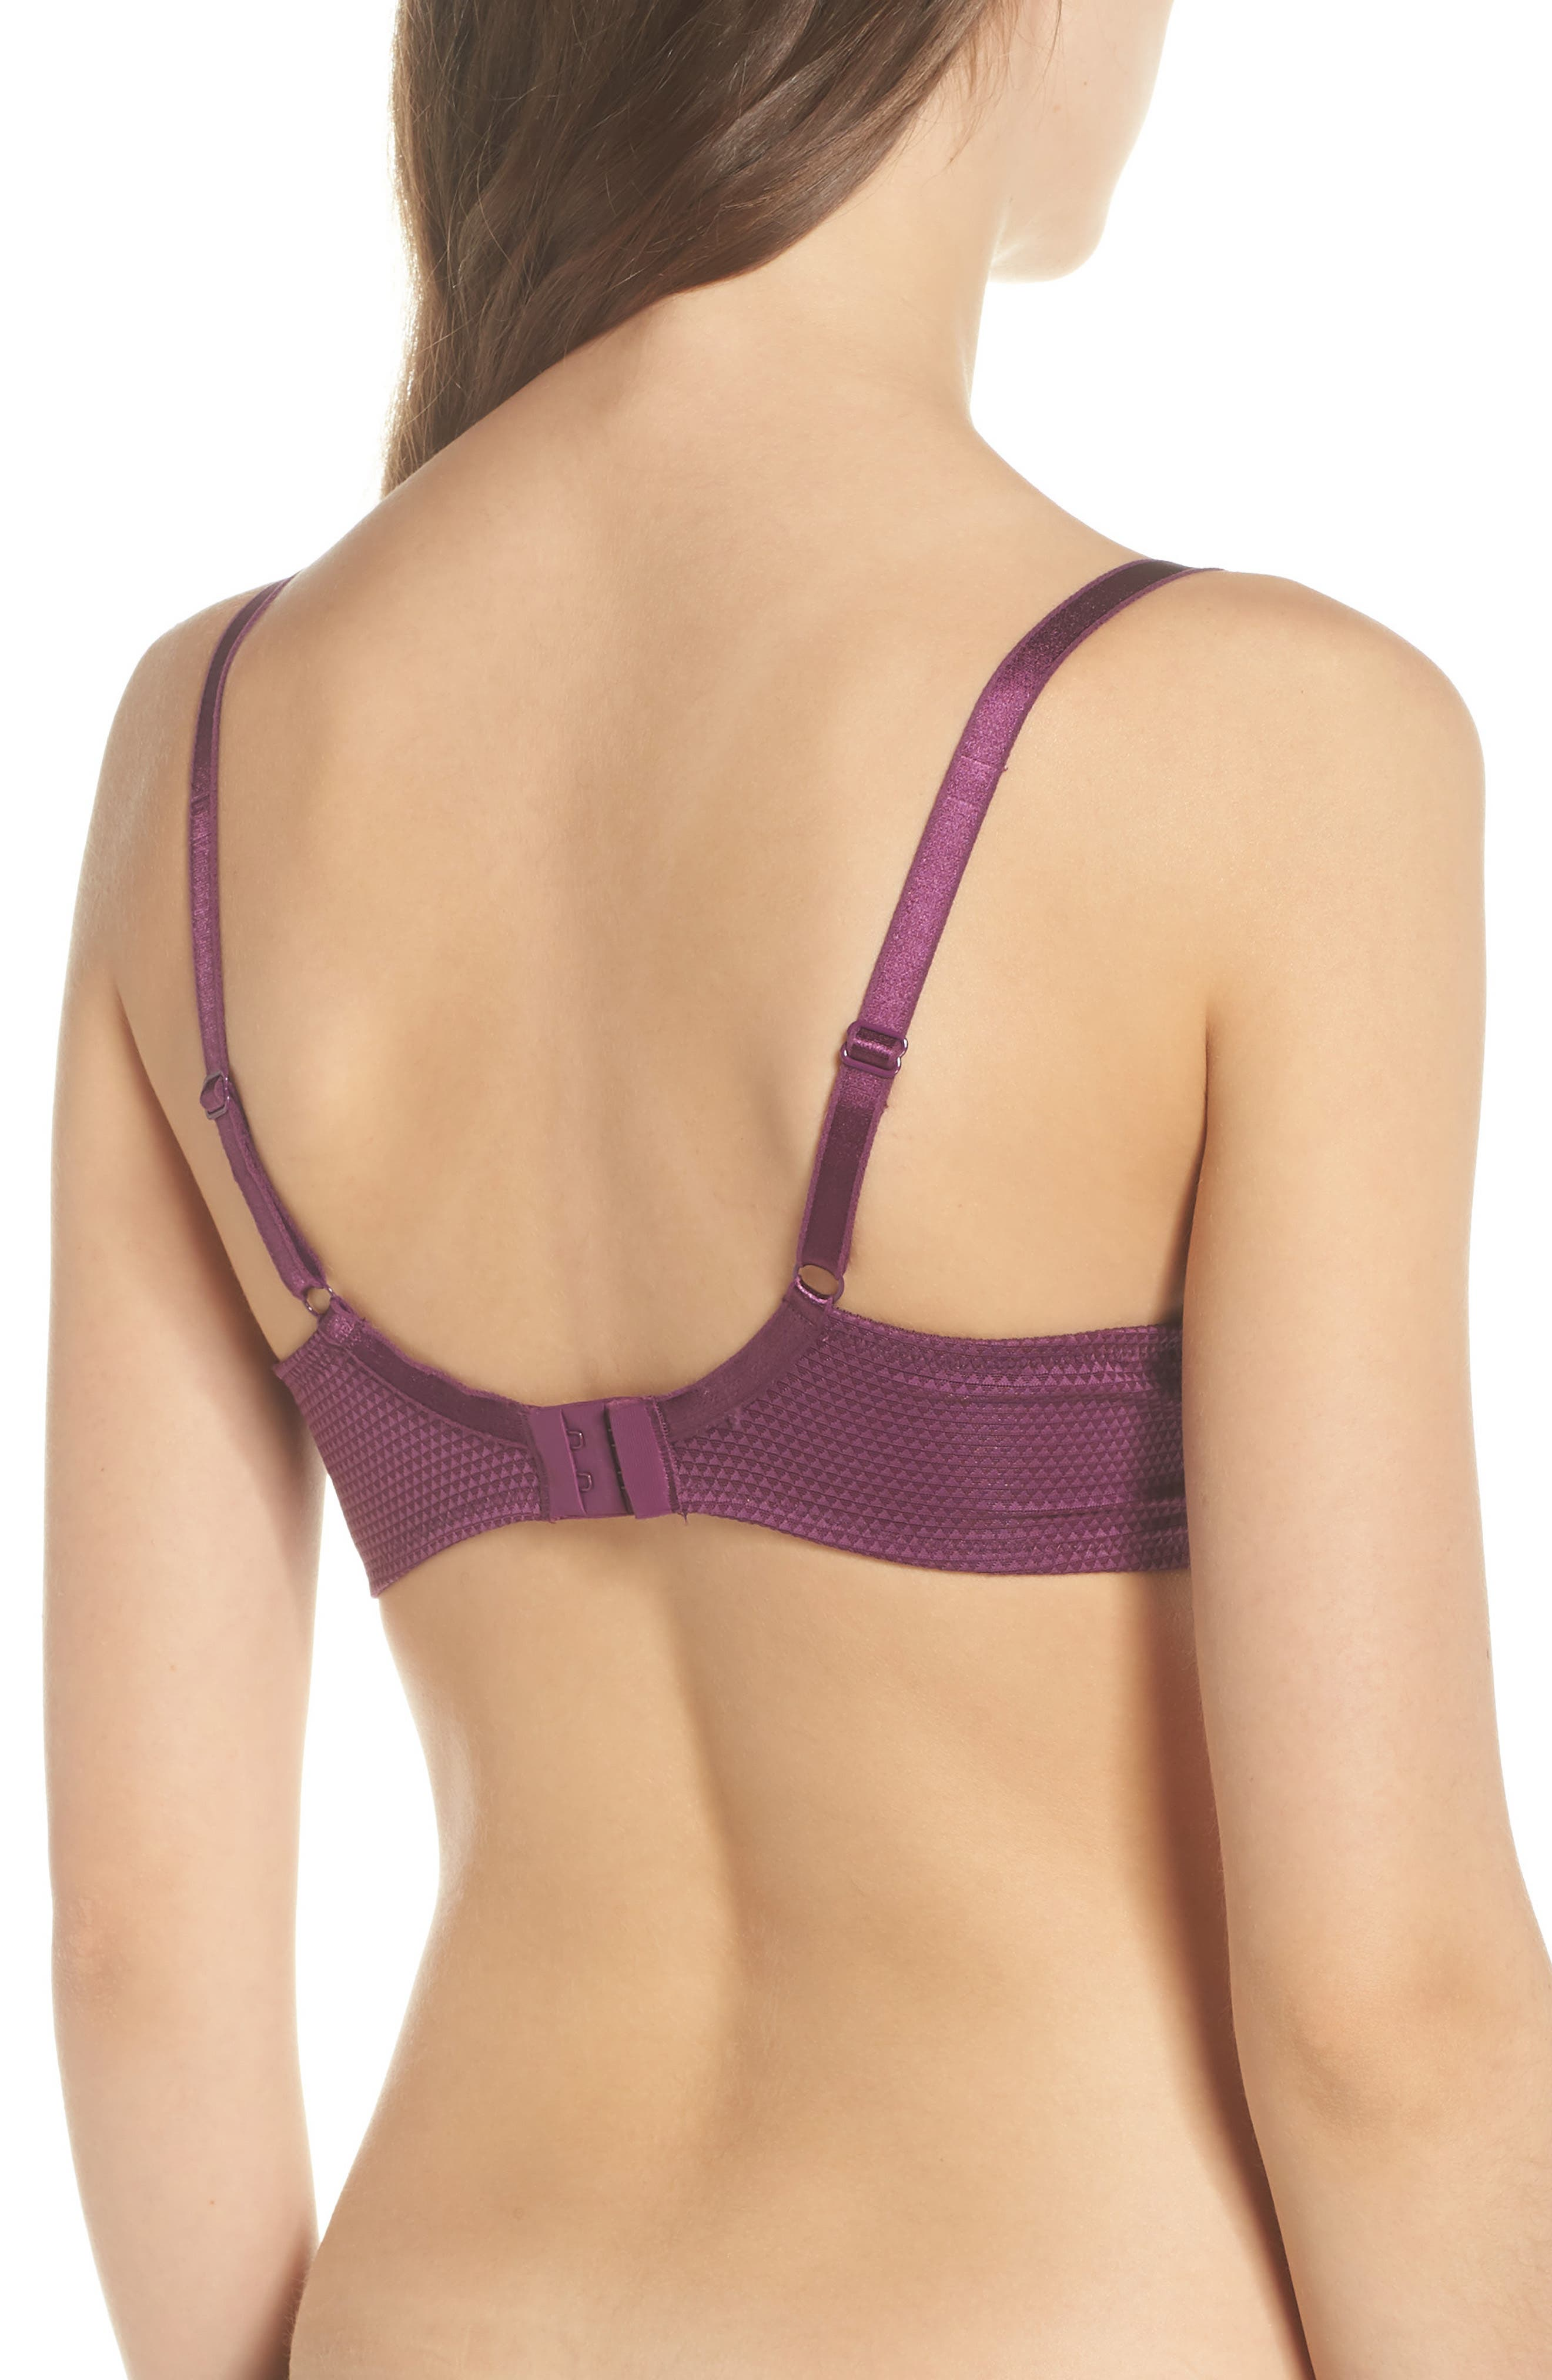 'Brooklyn' Underwire T-Shirt Bra,                             Alternate thumbnail 15, color,